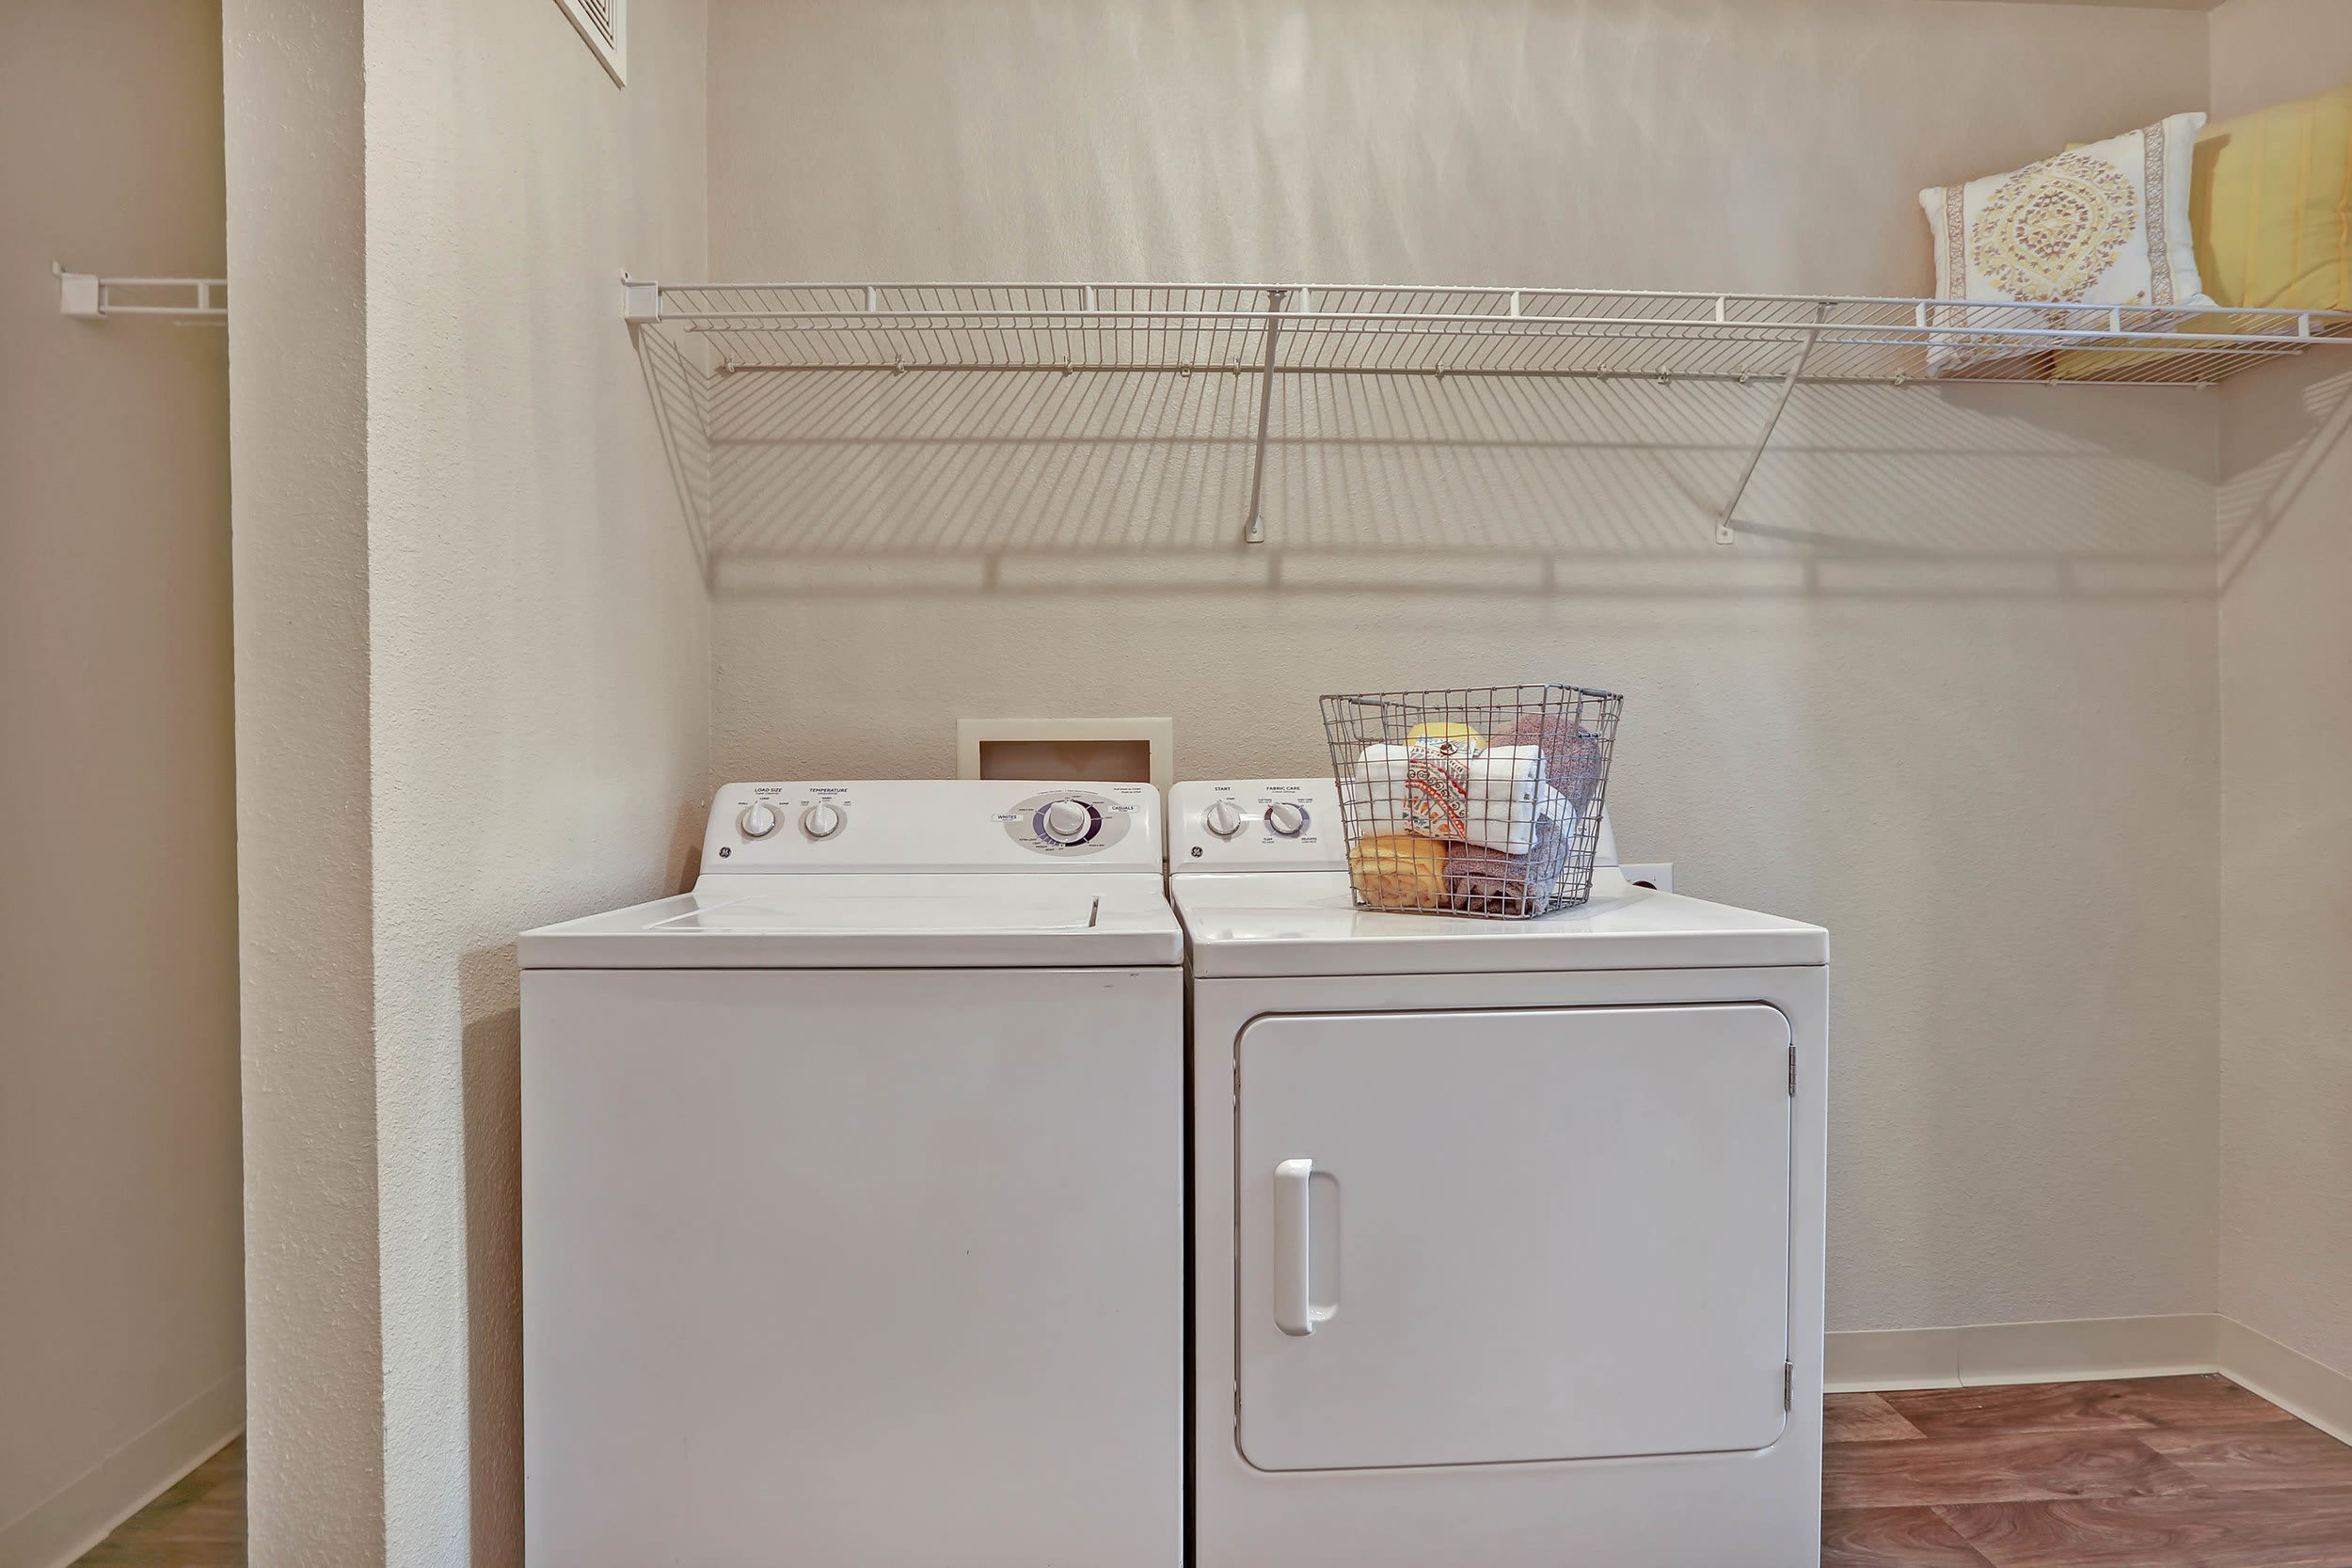 The Pines at Castle Rock Apartments in Castle Rock, Colorado offers apartments with a washer/dryer